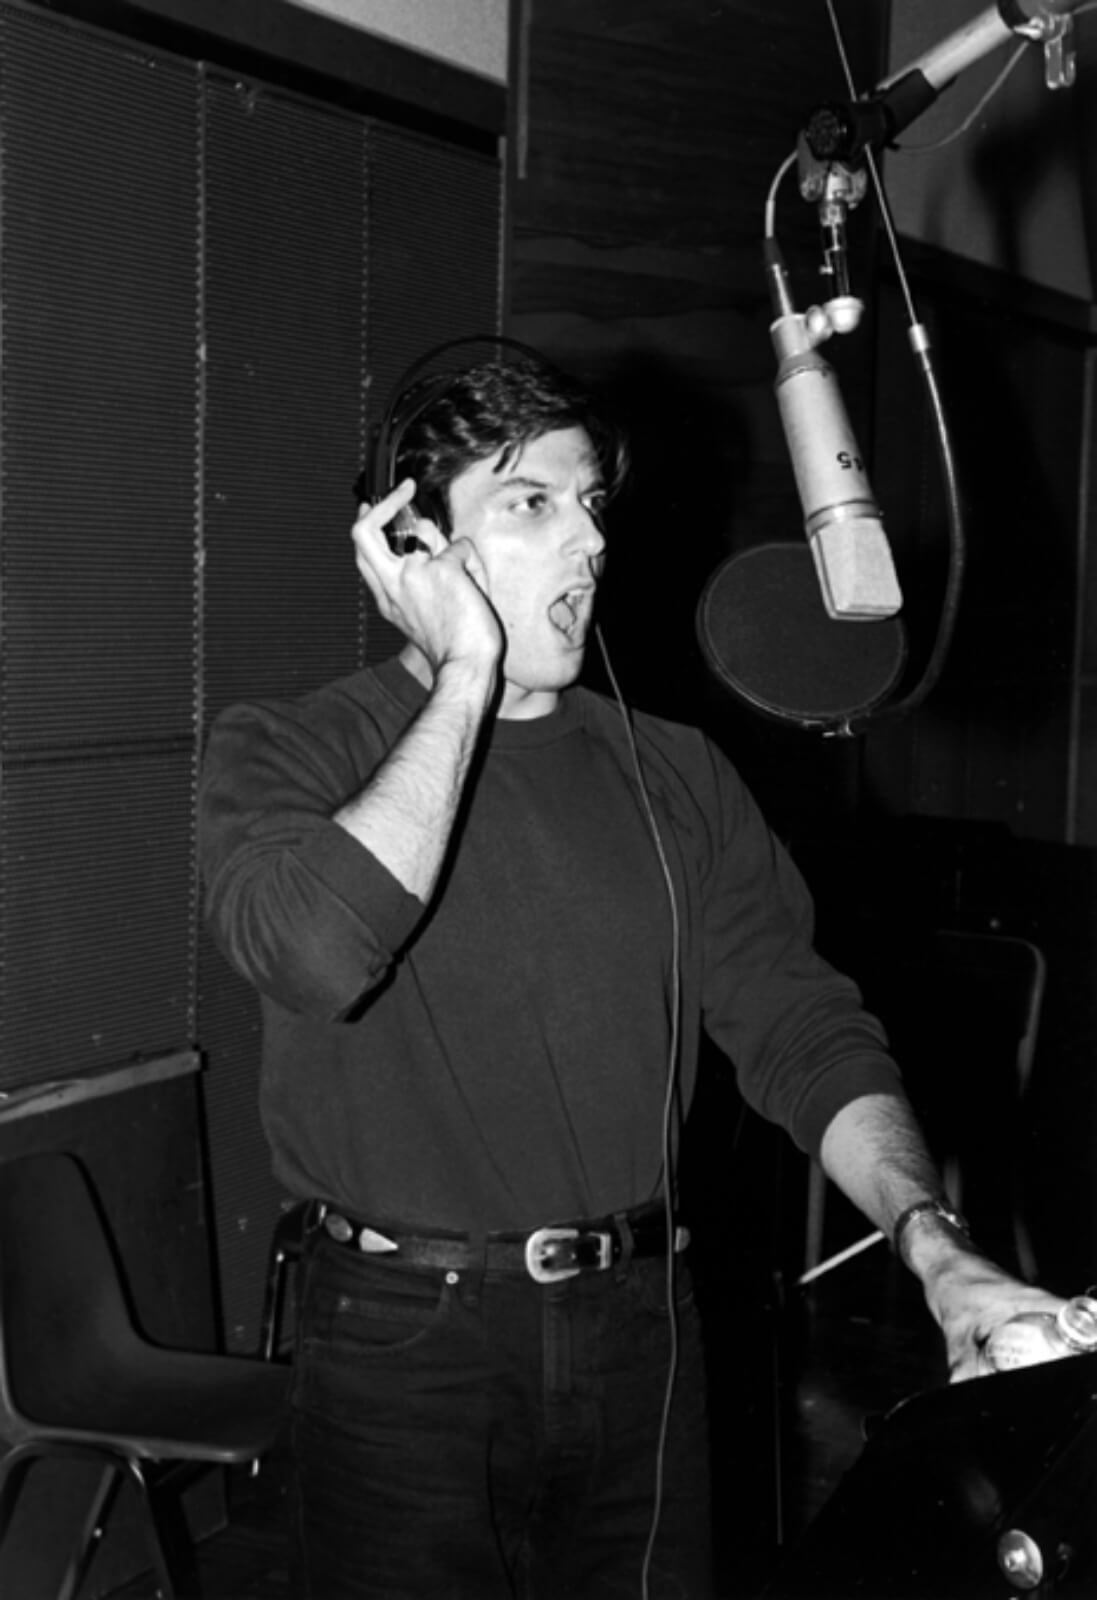 Black and white photo of Bob Cuccioli recording the cast album to And the World Goes 'Round. He is wearing a turtleneck and has one hand on headphones while singing into a microphone.